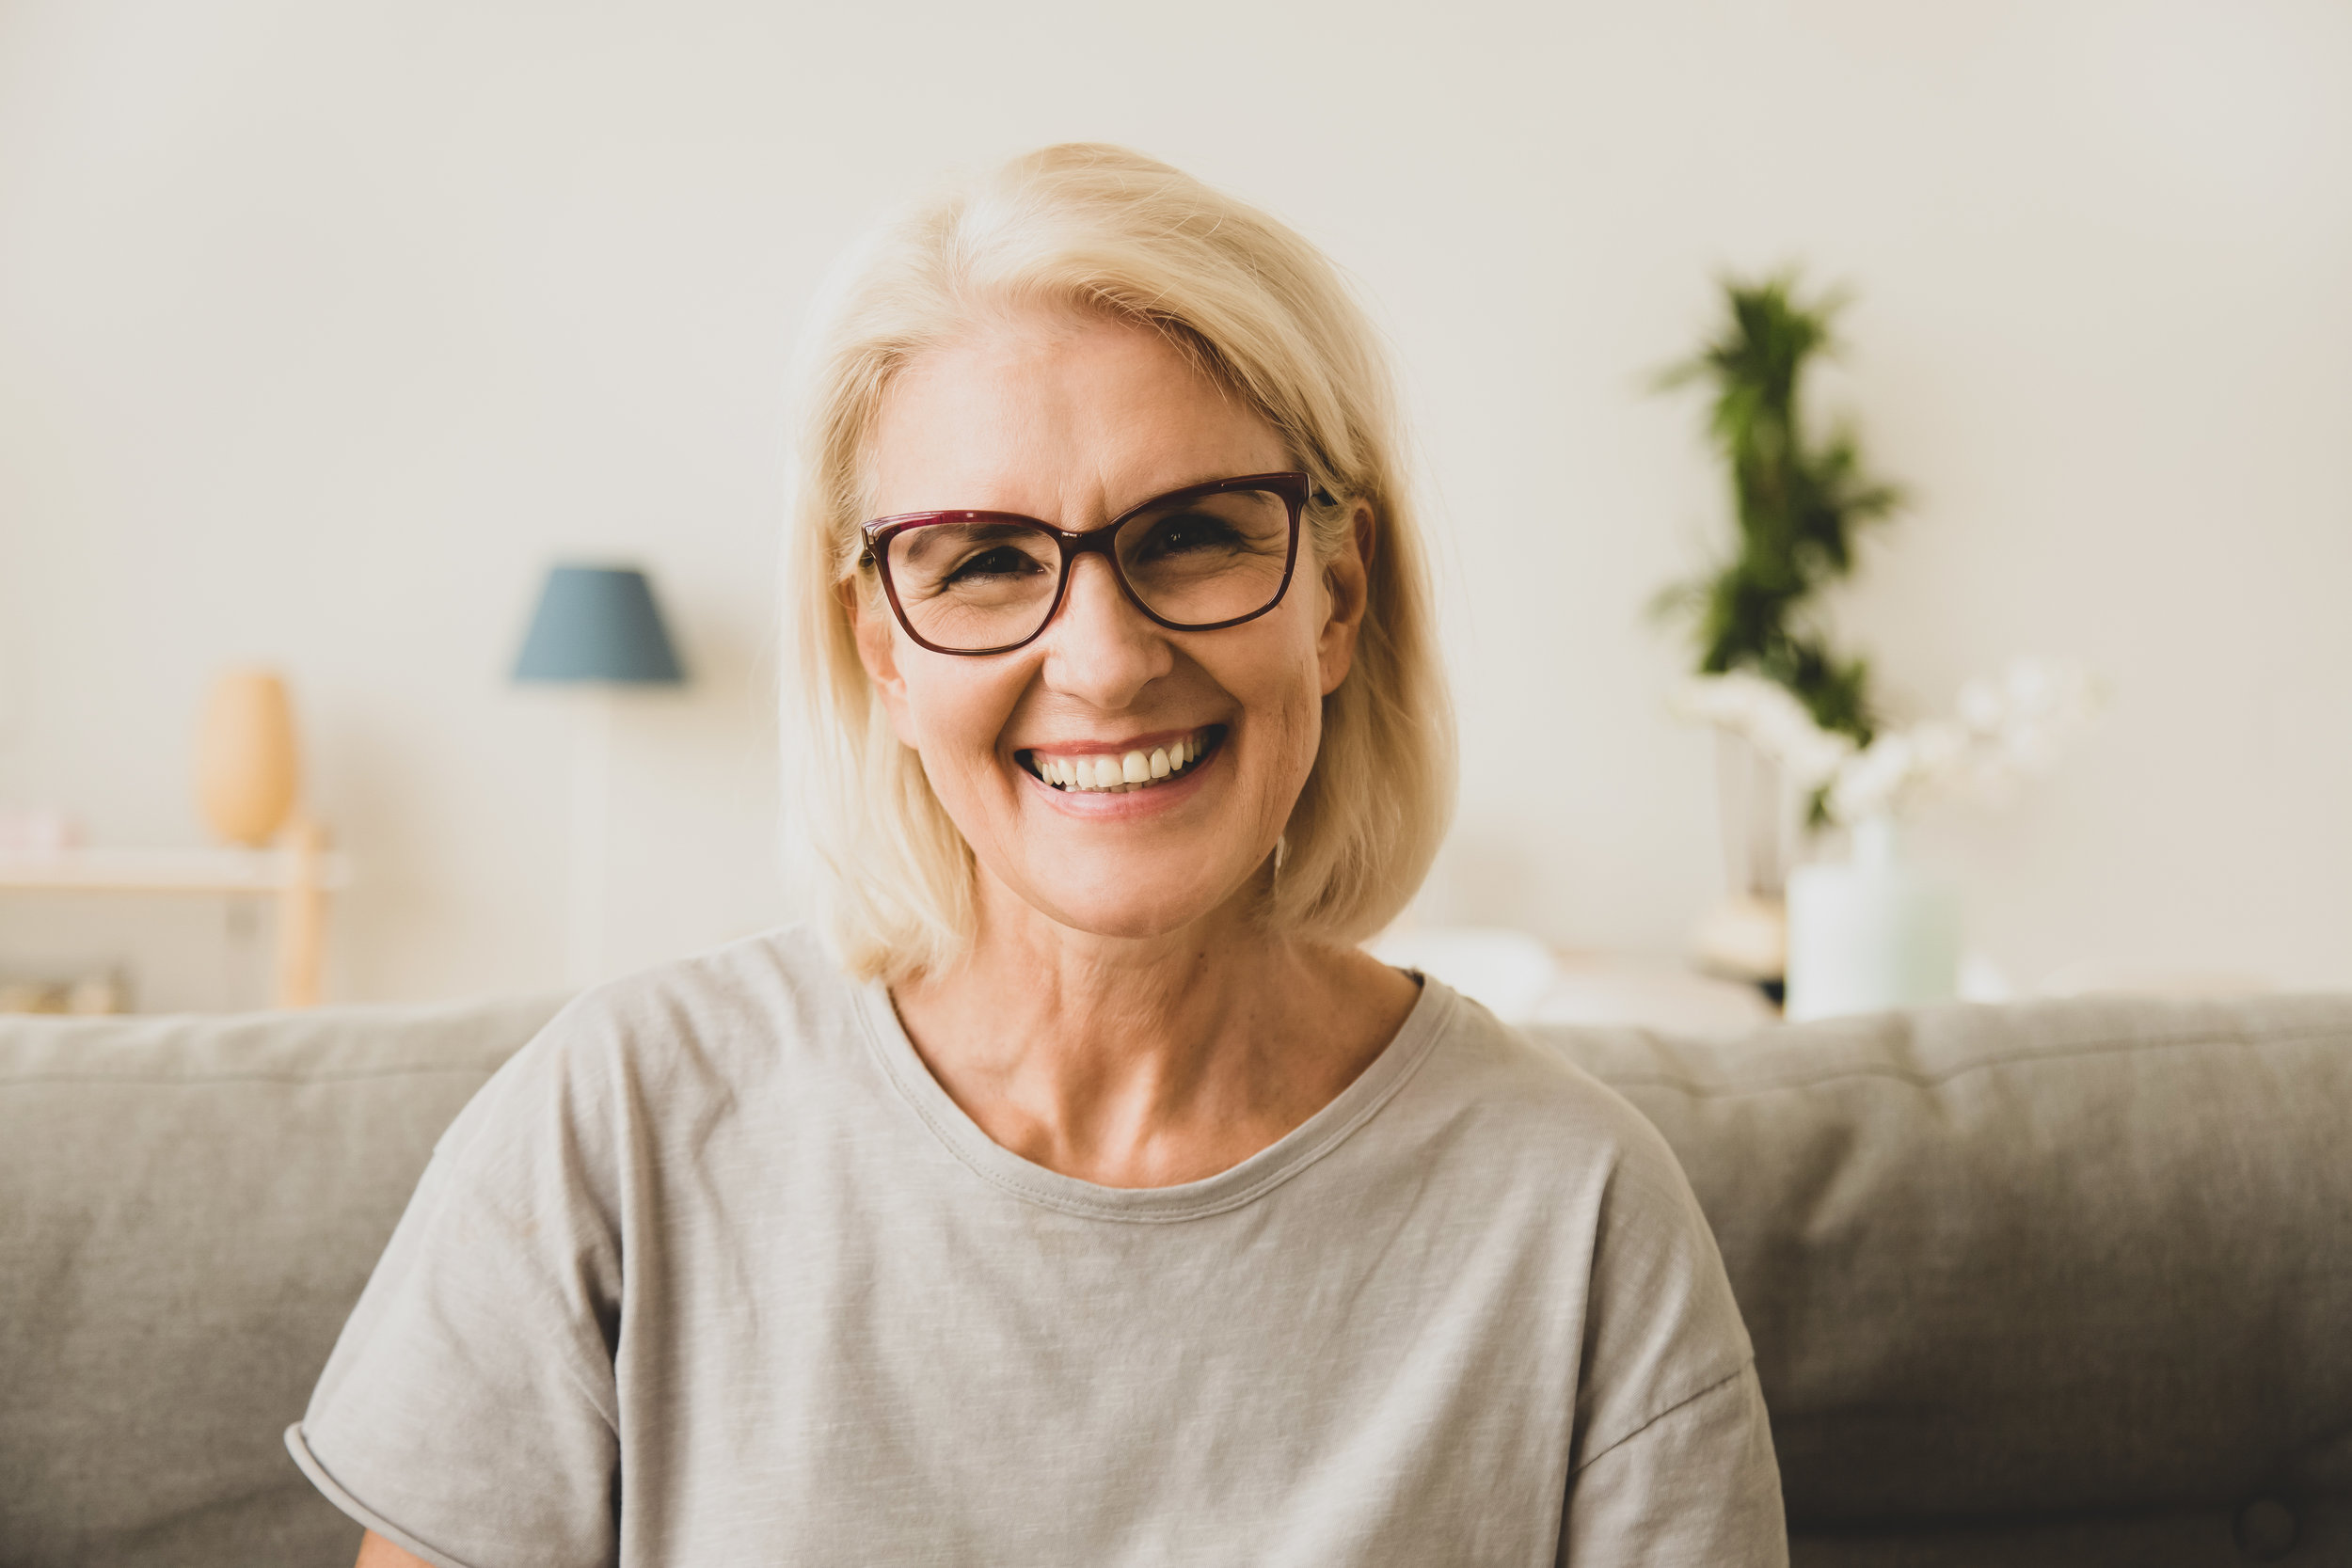 Emotional Wellbeing - True wellbeing lives in three places consecutively: mind, body and spirit. Our emotional wellbeing treatments boost each of these areas, and help to improve:• Anxiety, Stress, Depression• The feeling of